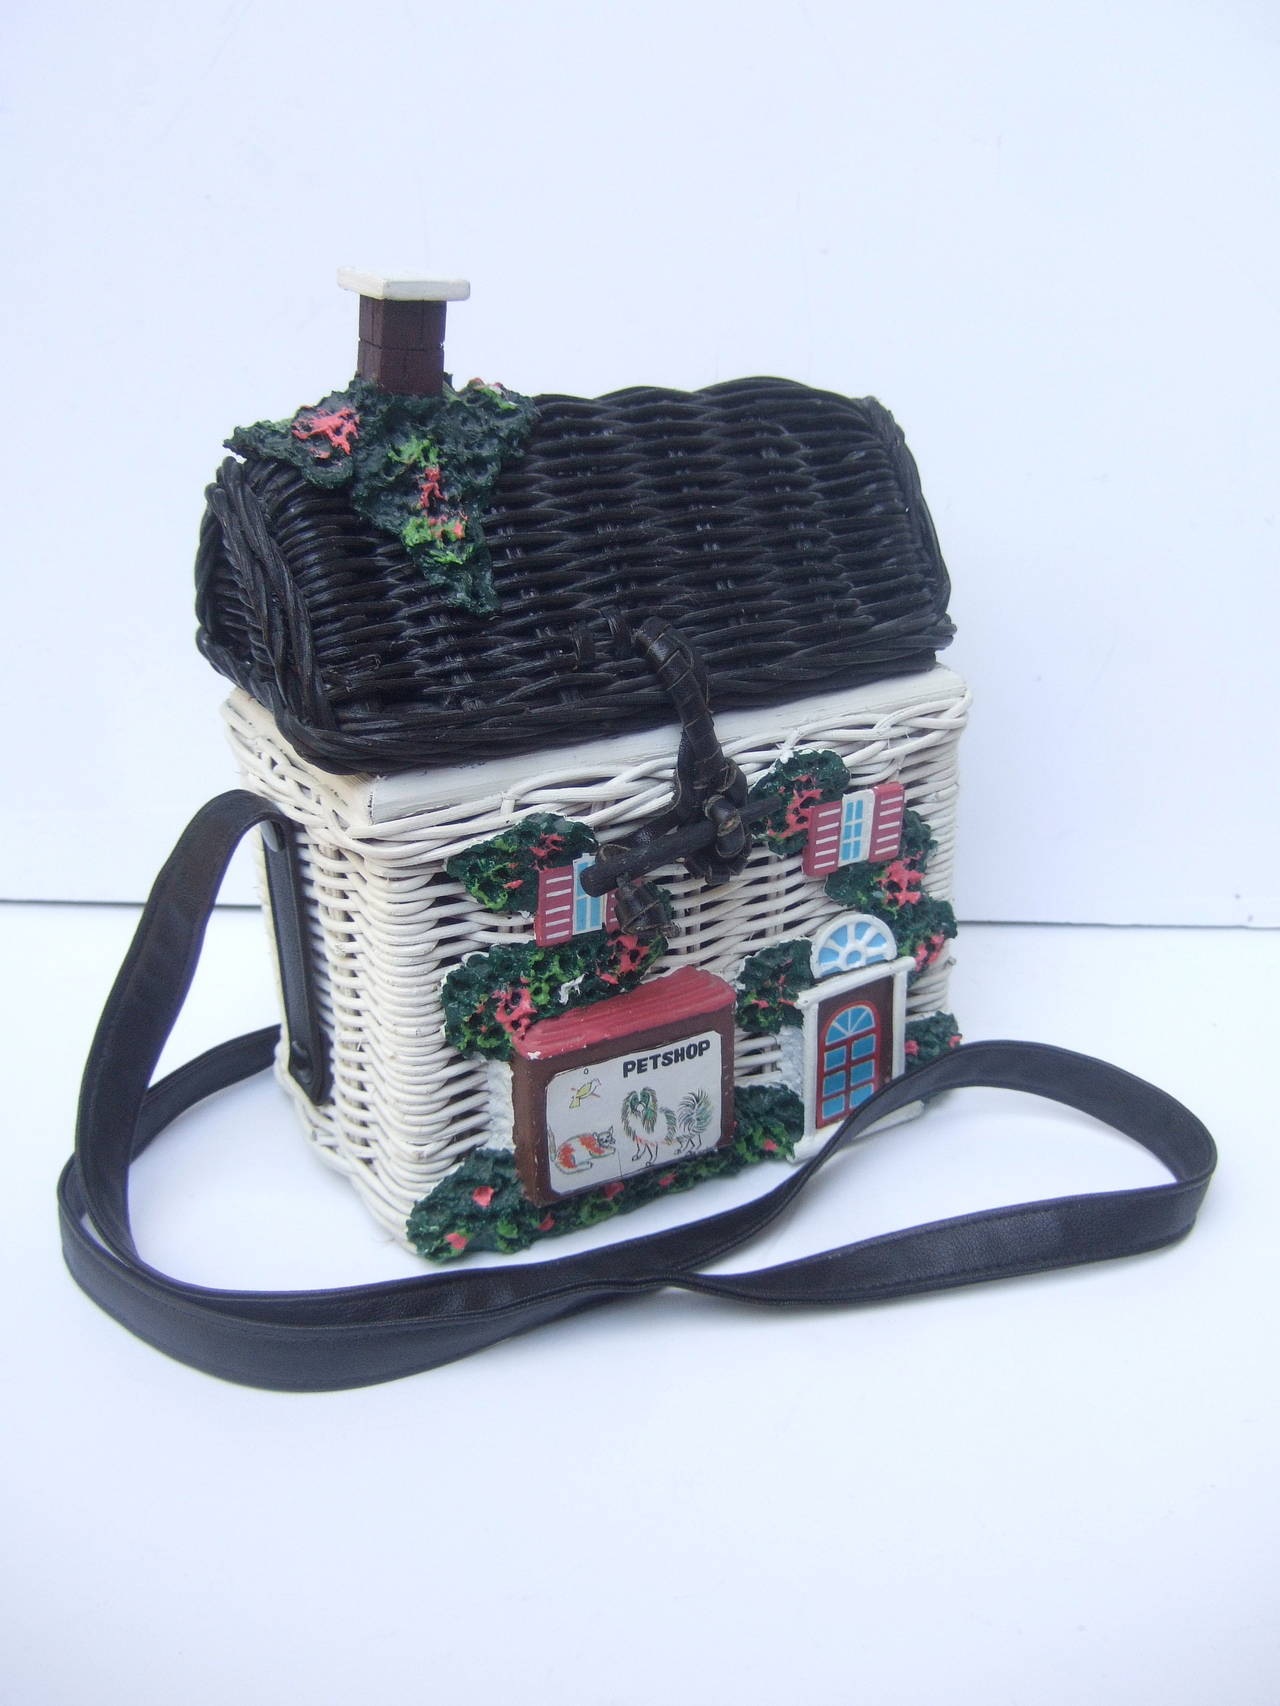 Timmy Woods Beverly Hills Whimsical Wicker House Handbag In Excellent Condition For Santa Barbara